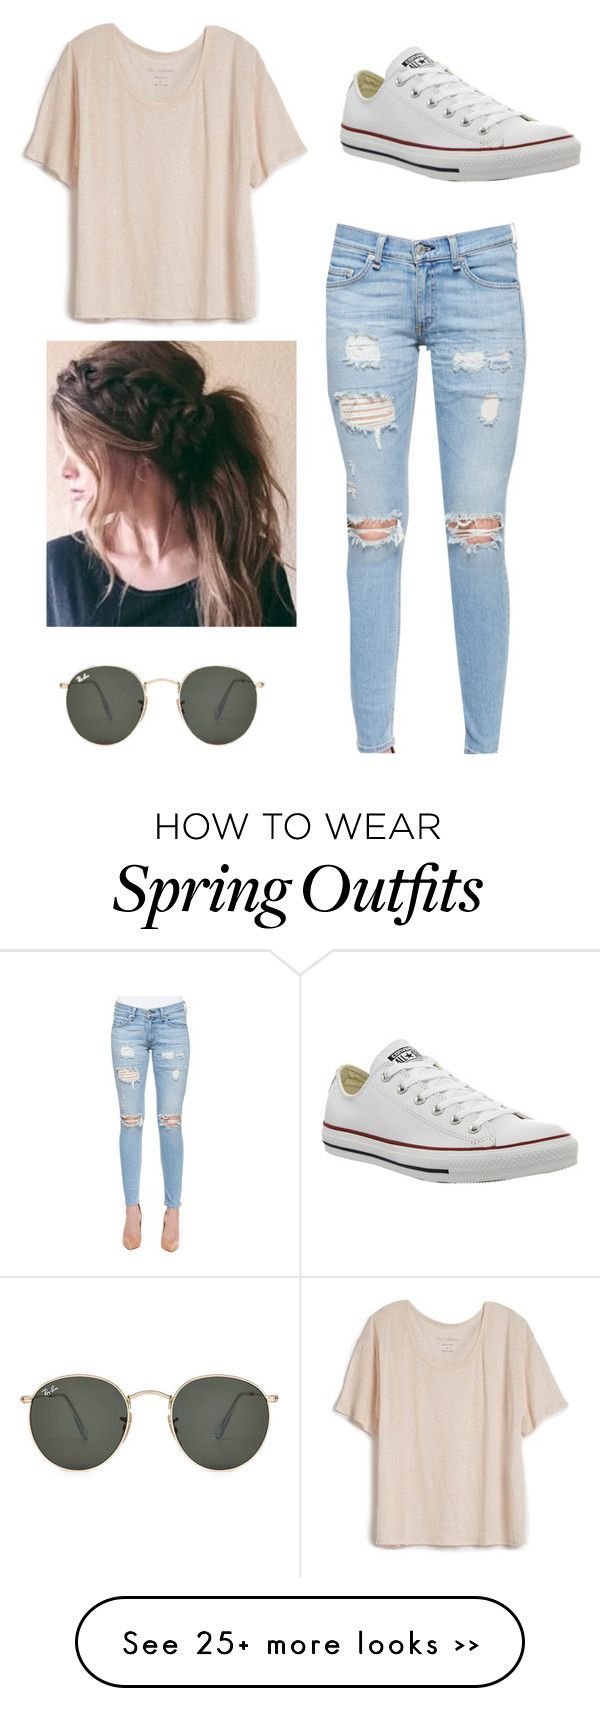 """""""Spring outfit 3"""" by jessie-taylor-i on Polyvore"""